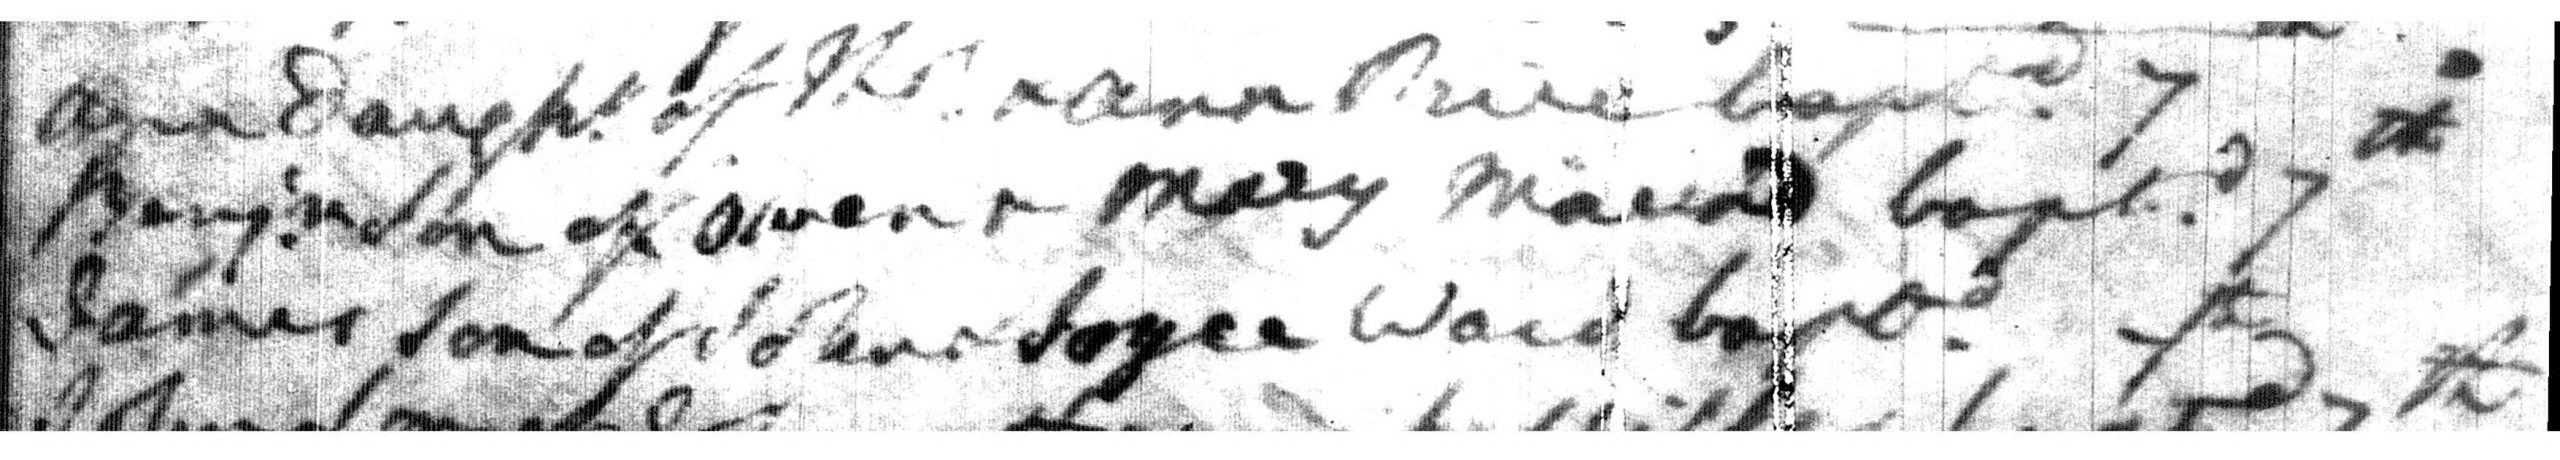 Baptism entry